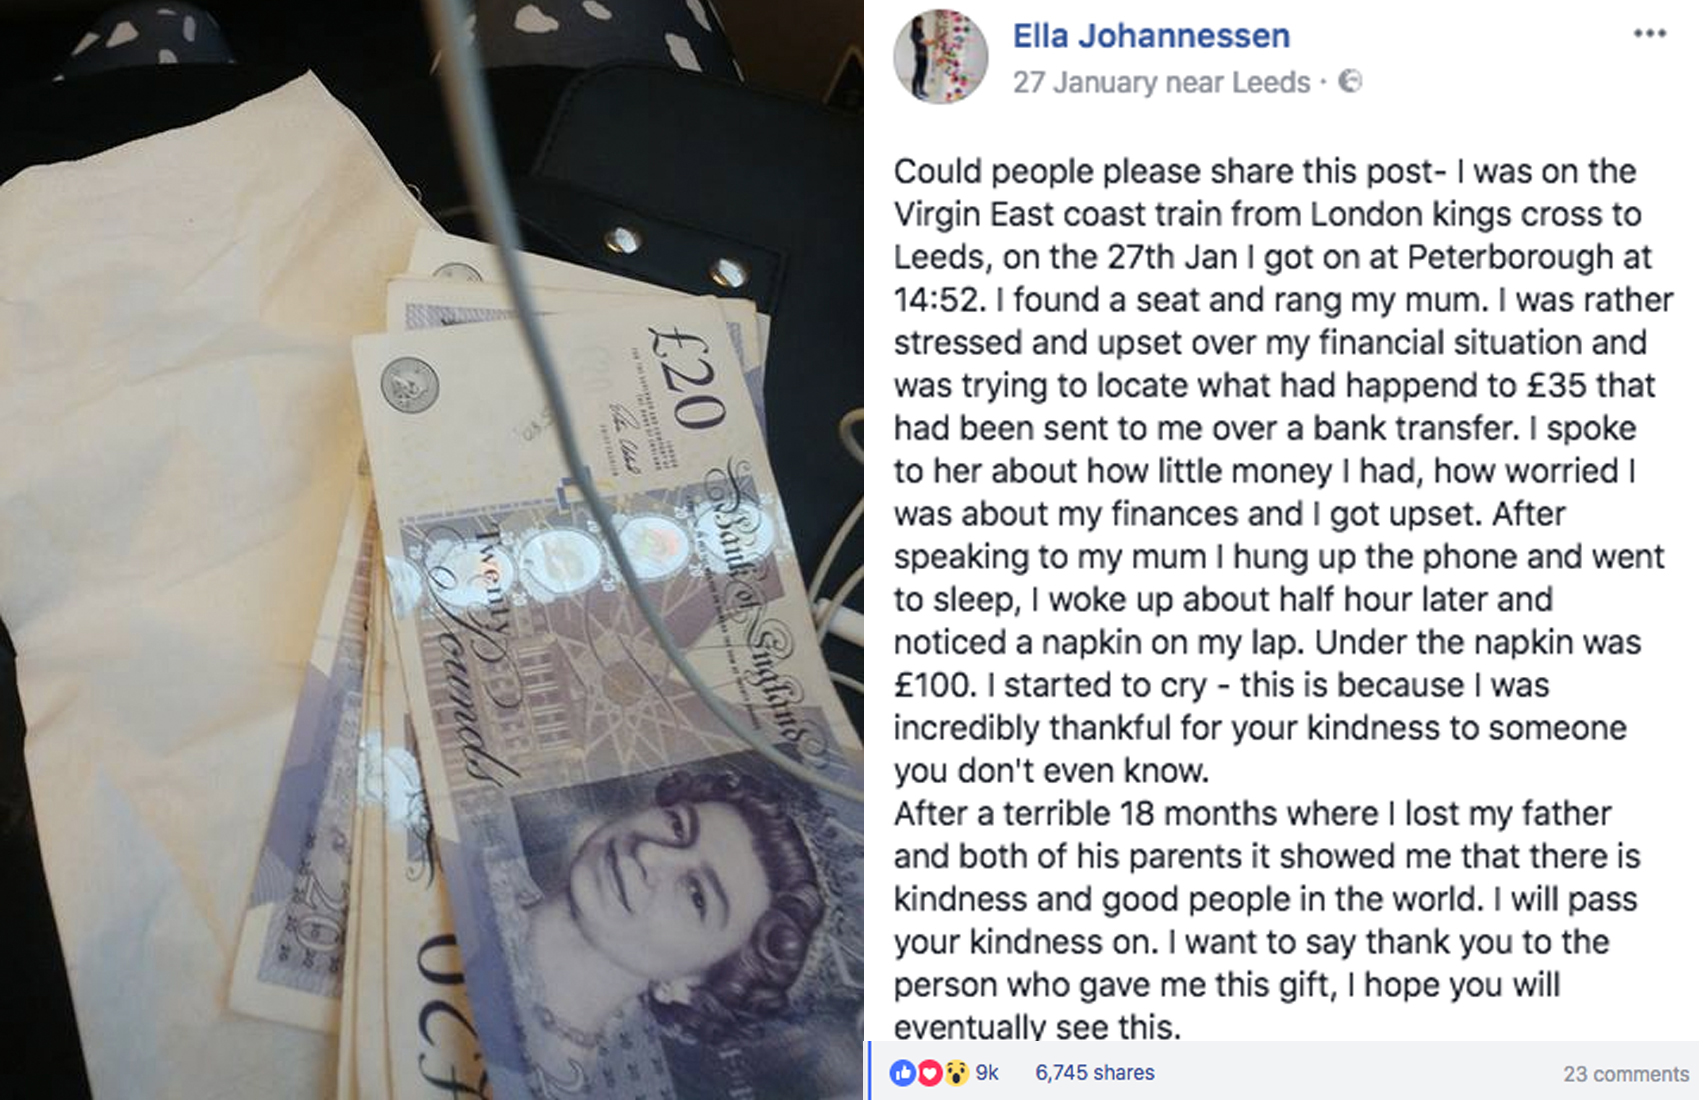 Hard-up train passenger wakes to find £100 gift from stranger